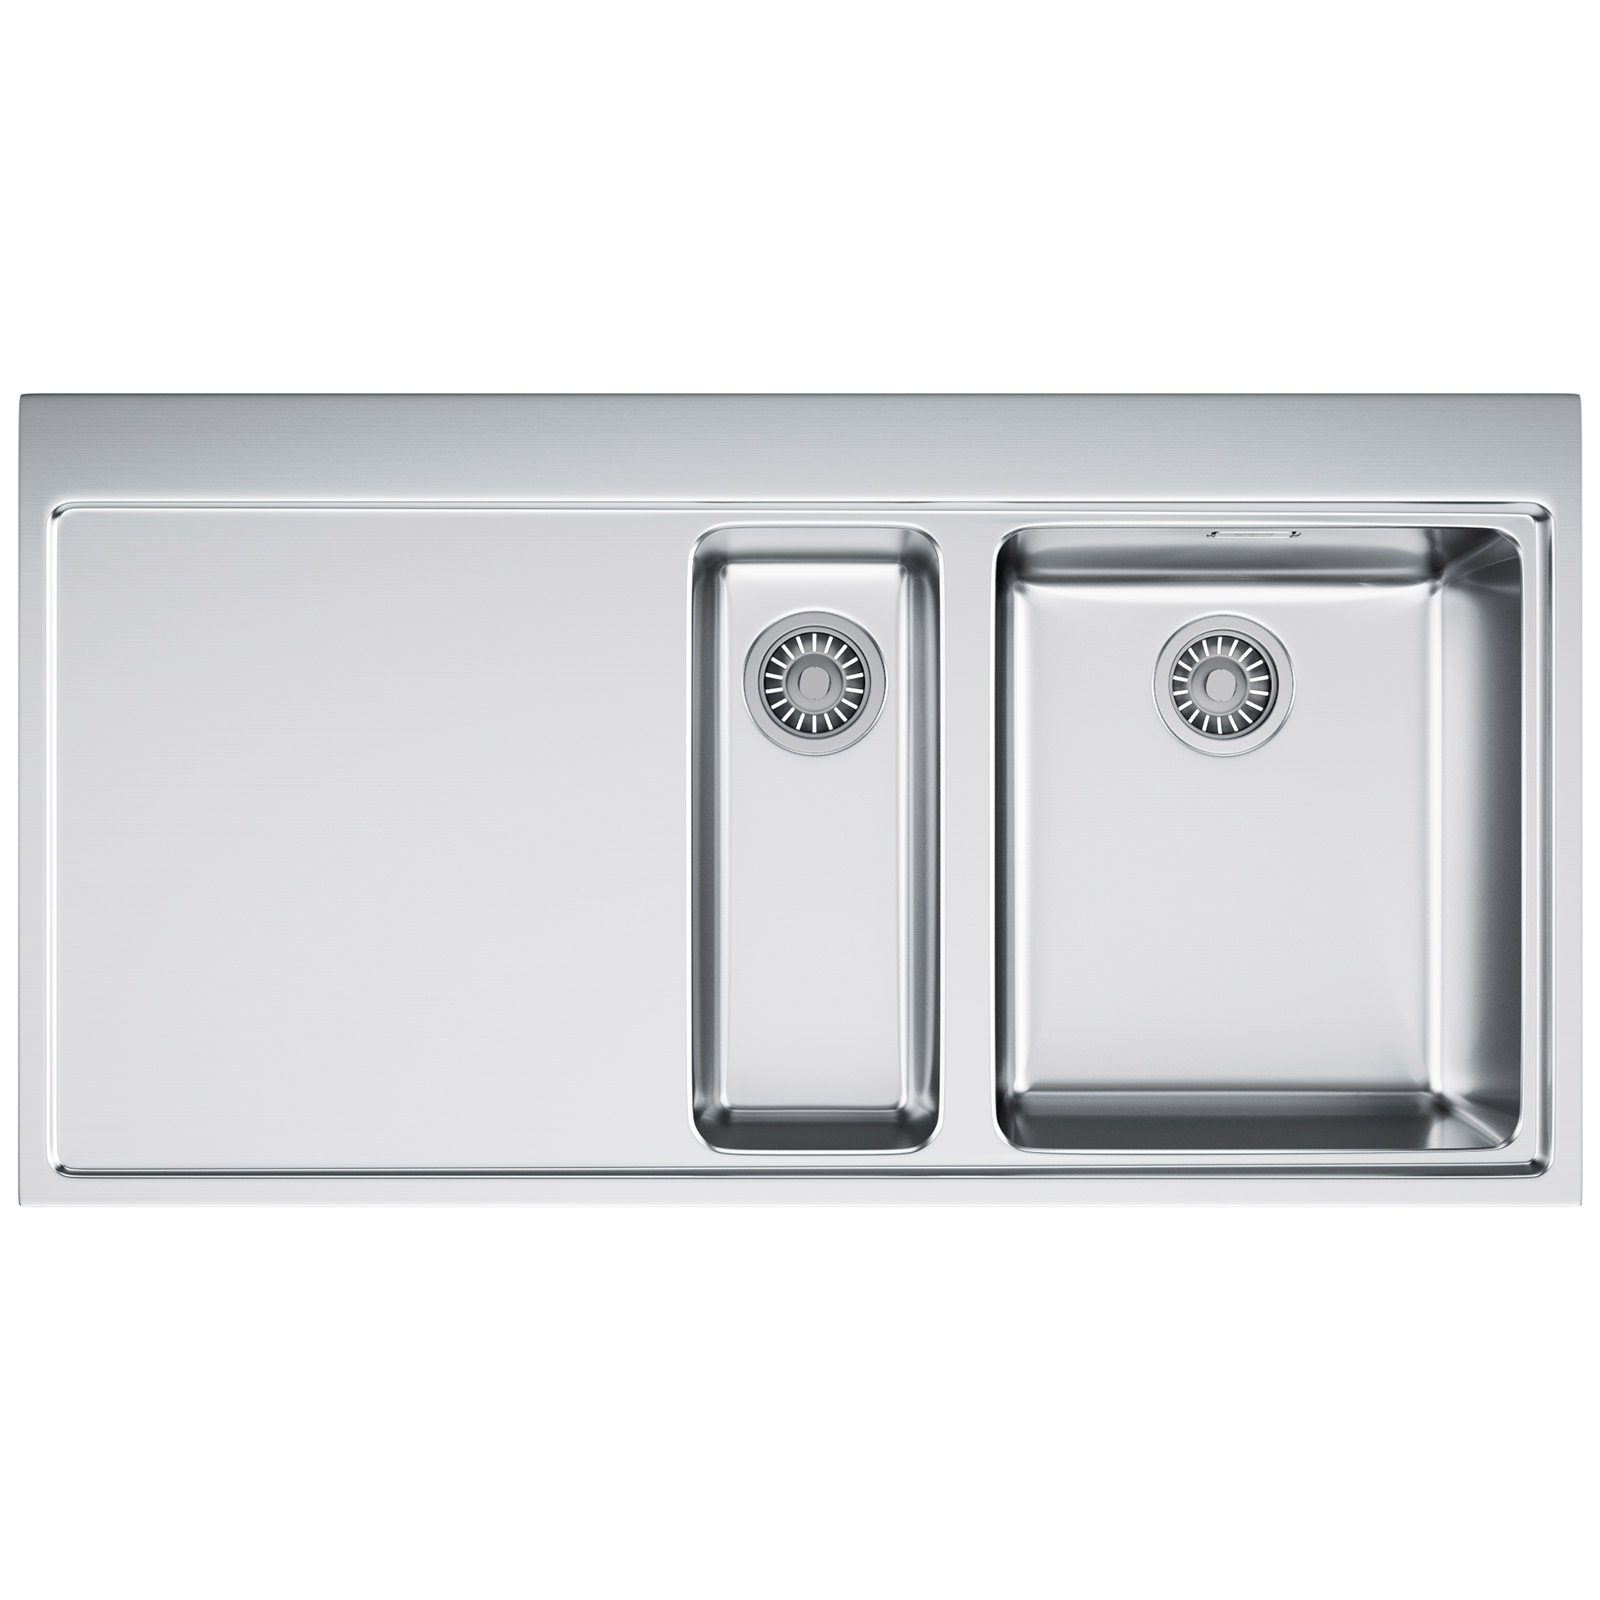 Franke Ss Sinks : Franke Mythos MMX 251 Slim-Top 1.5 Bowl Stainless Steel Inset Sink ...